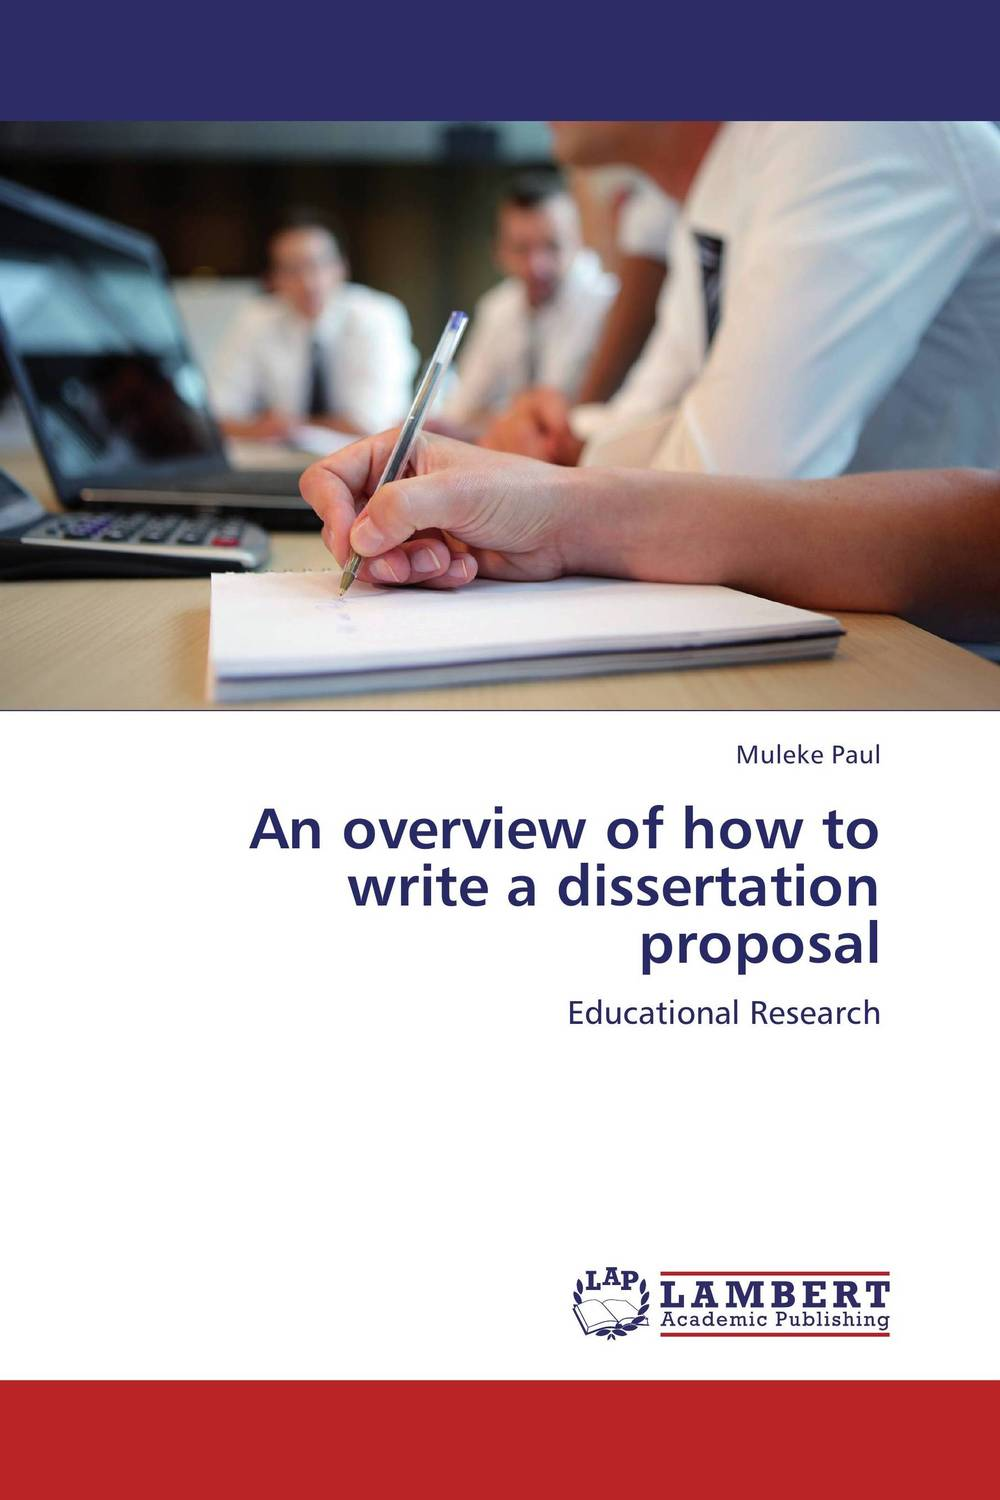 An overview of how to write a dissertation proposal